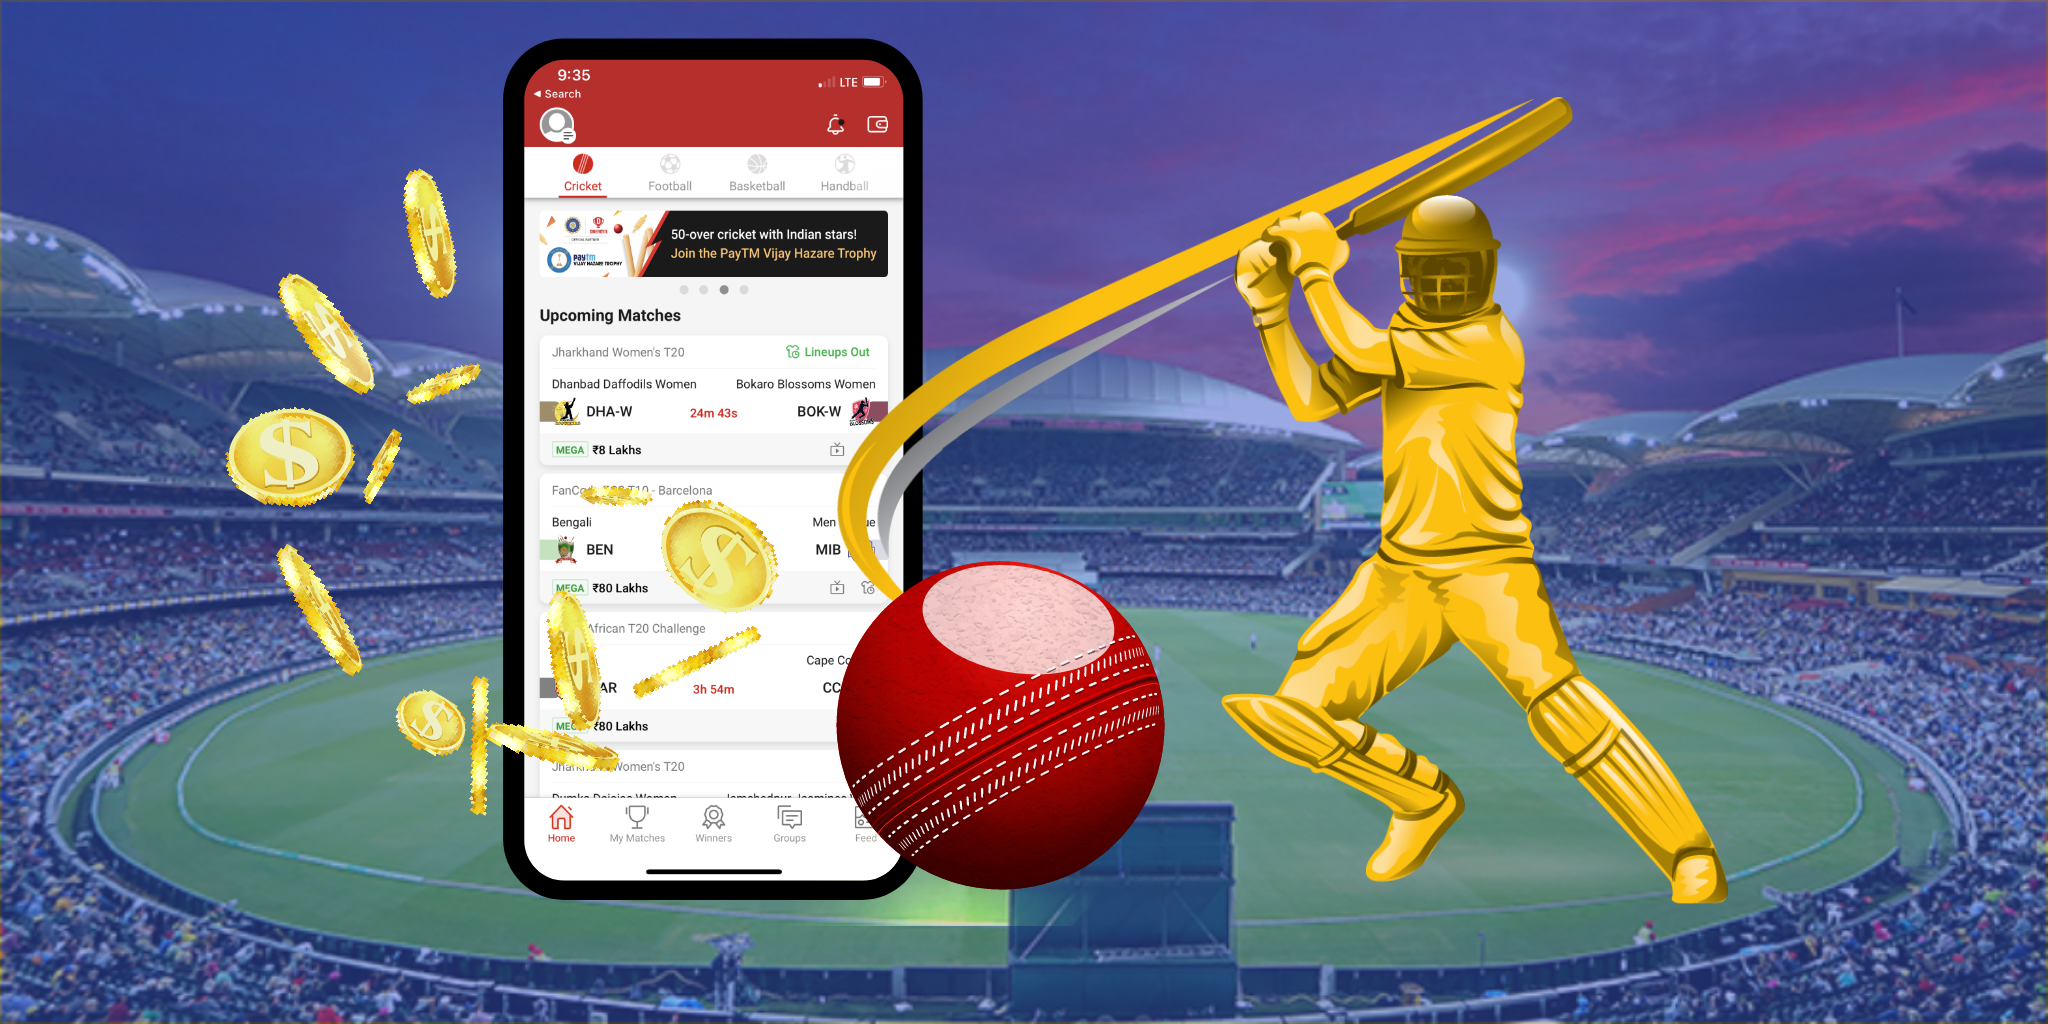 ipl score app development